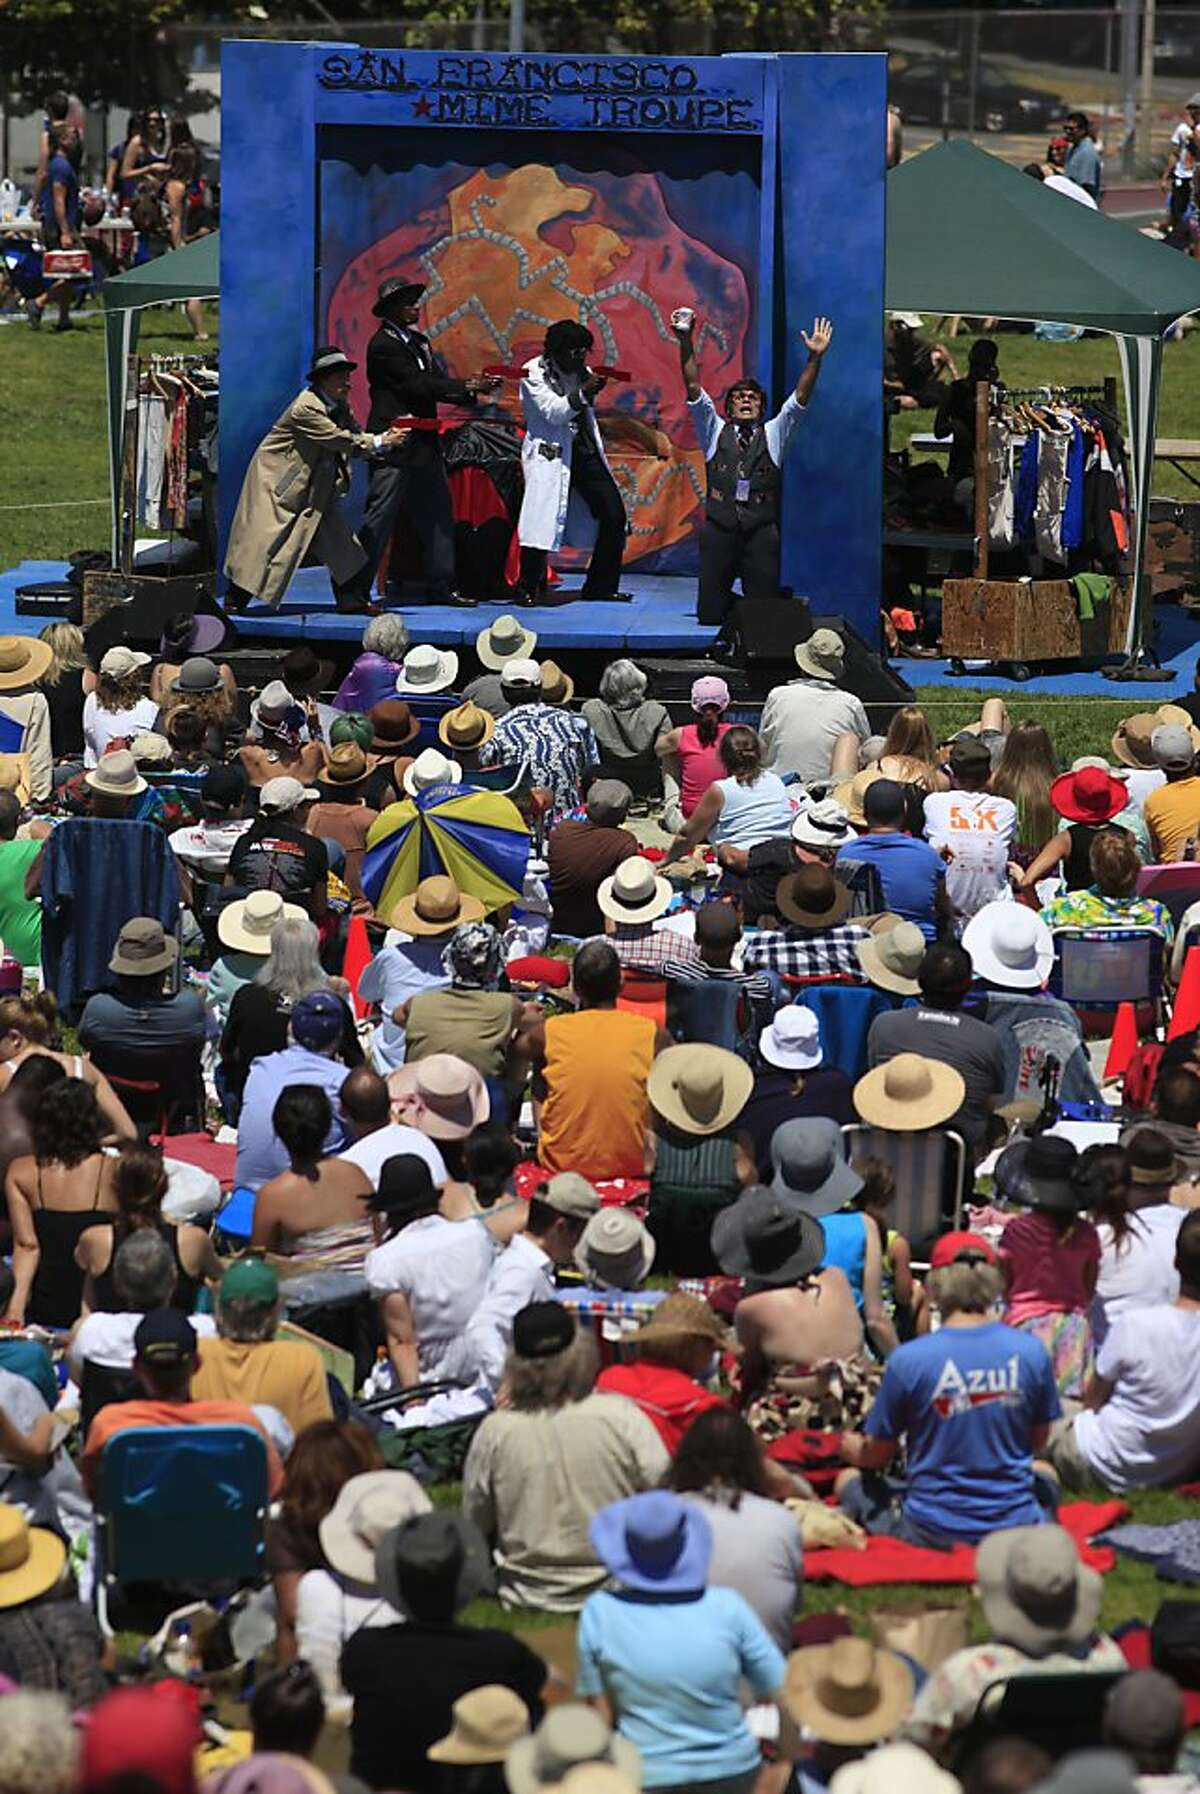 """Opens July 4: The SF Mime Troupe kicks off its 55th season with """"Ripple Effect"""" in Dolores Park July 4-5 before moving to Yerba Buena on July 6 and the rest of the Bay Area throughout the summer. The schedule is here."""